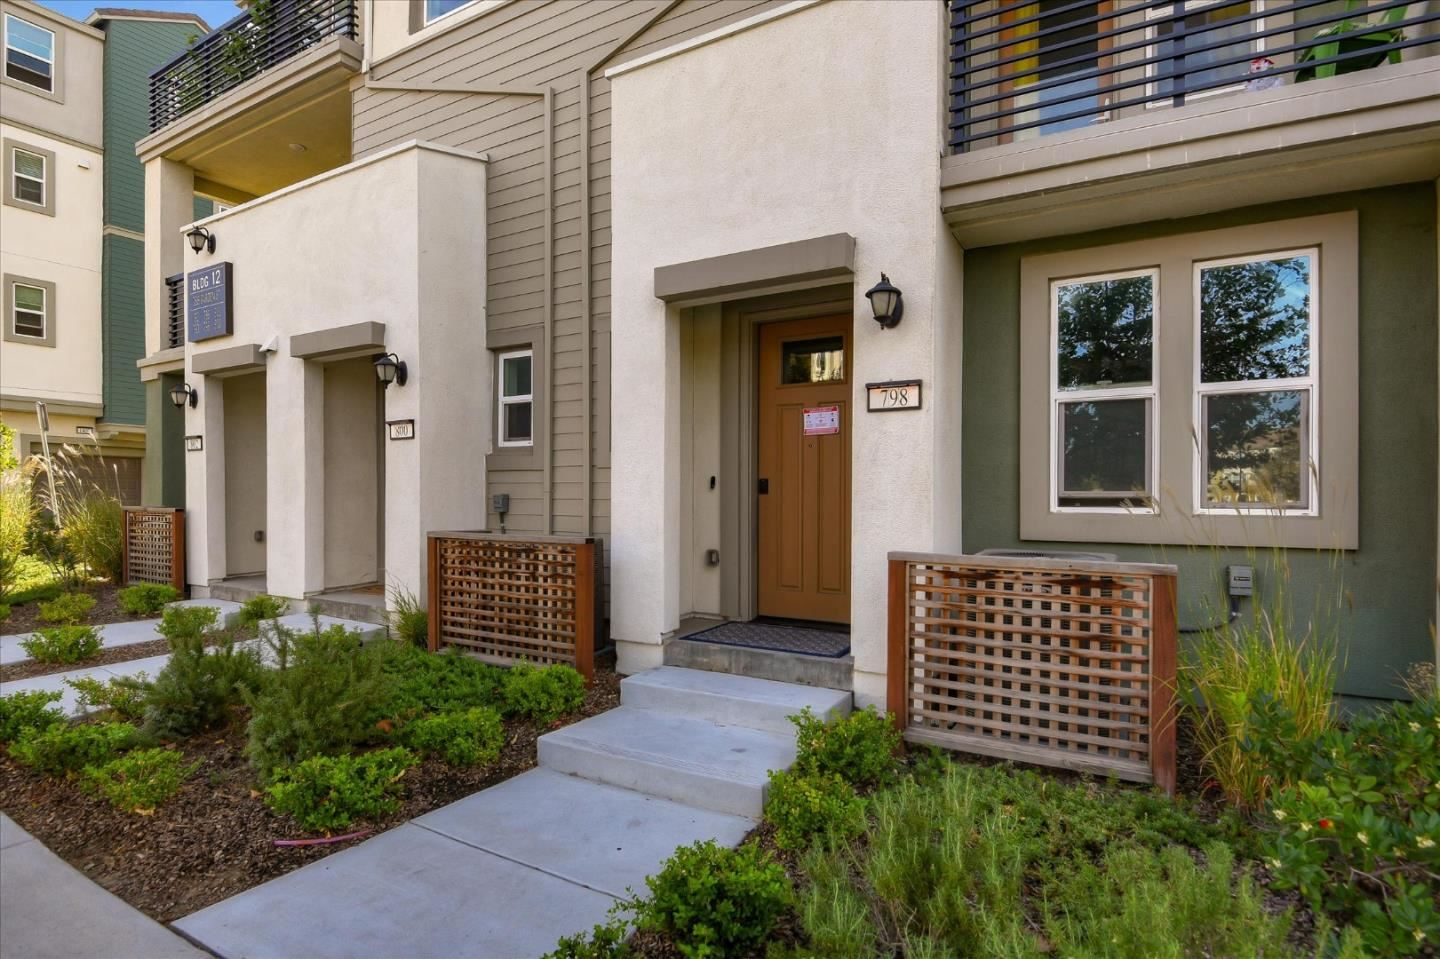 Photo for 798 Garden ST, MILPITAS, CA 95035 (MLS # ML81815333)